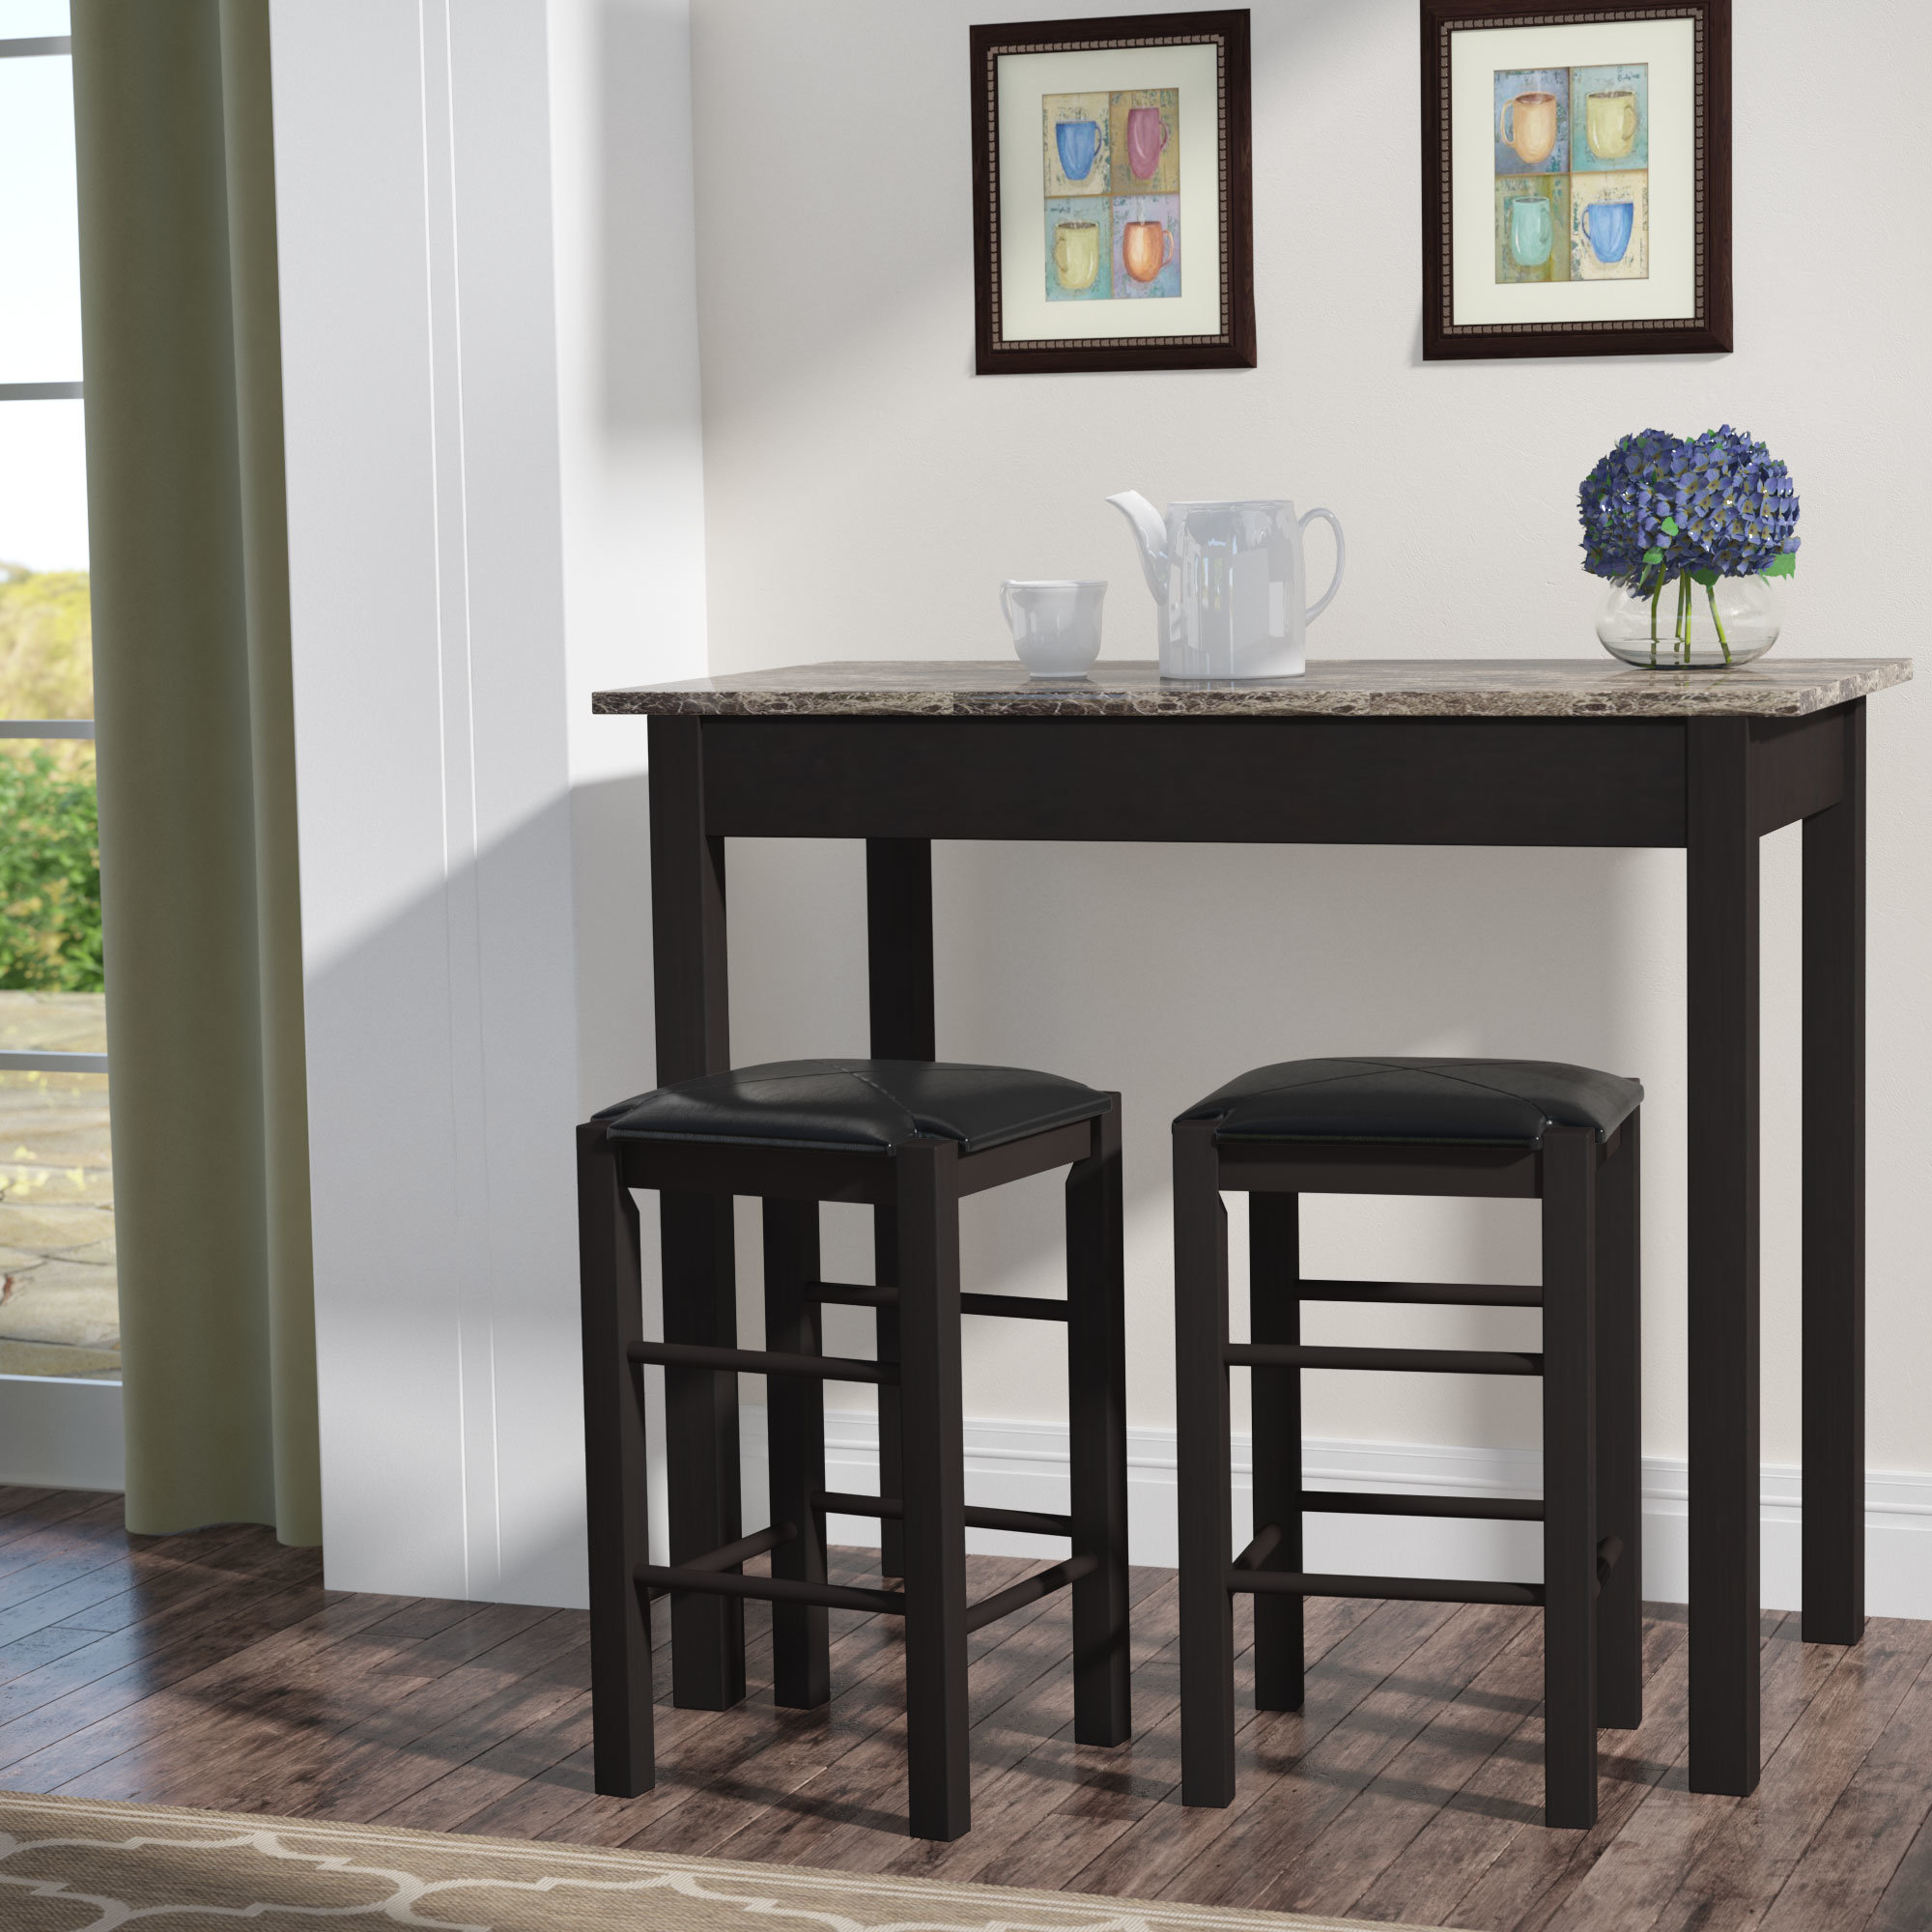 Newest Bettencourt 3 Piece Counter Height Dining Sets Intended For Sheetz 3 Piece Counter Height Dining Set (View 12 of 20)